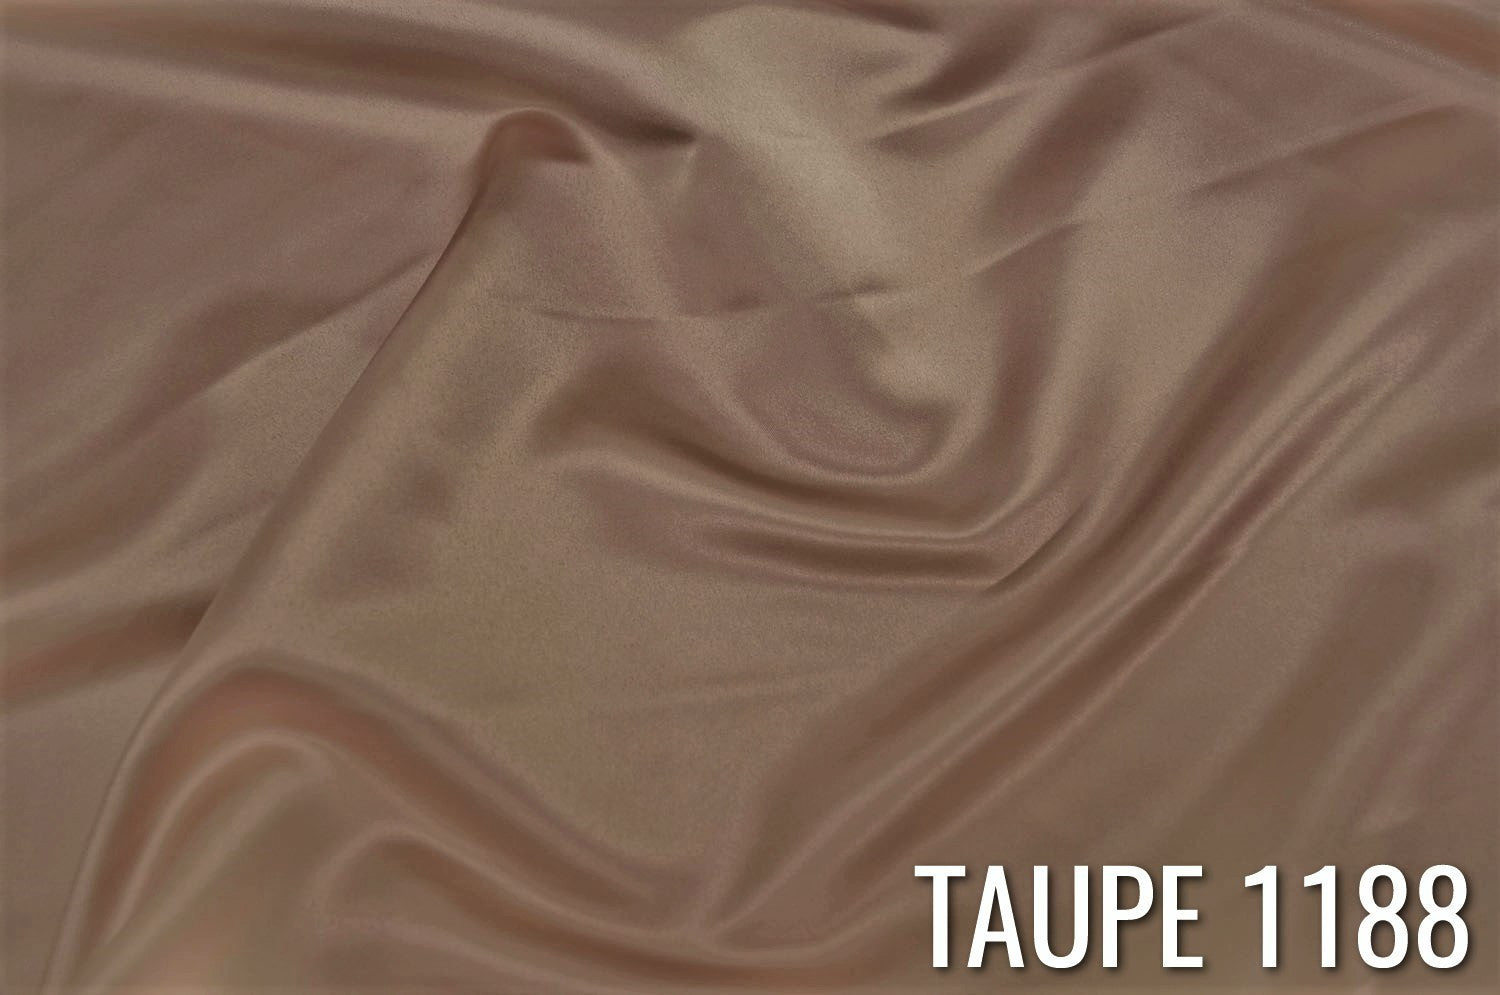 TAUPE 1188